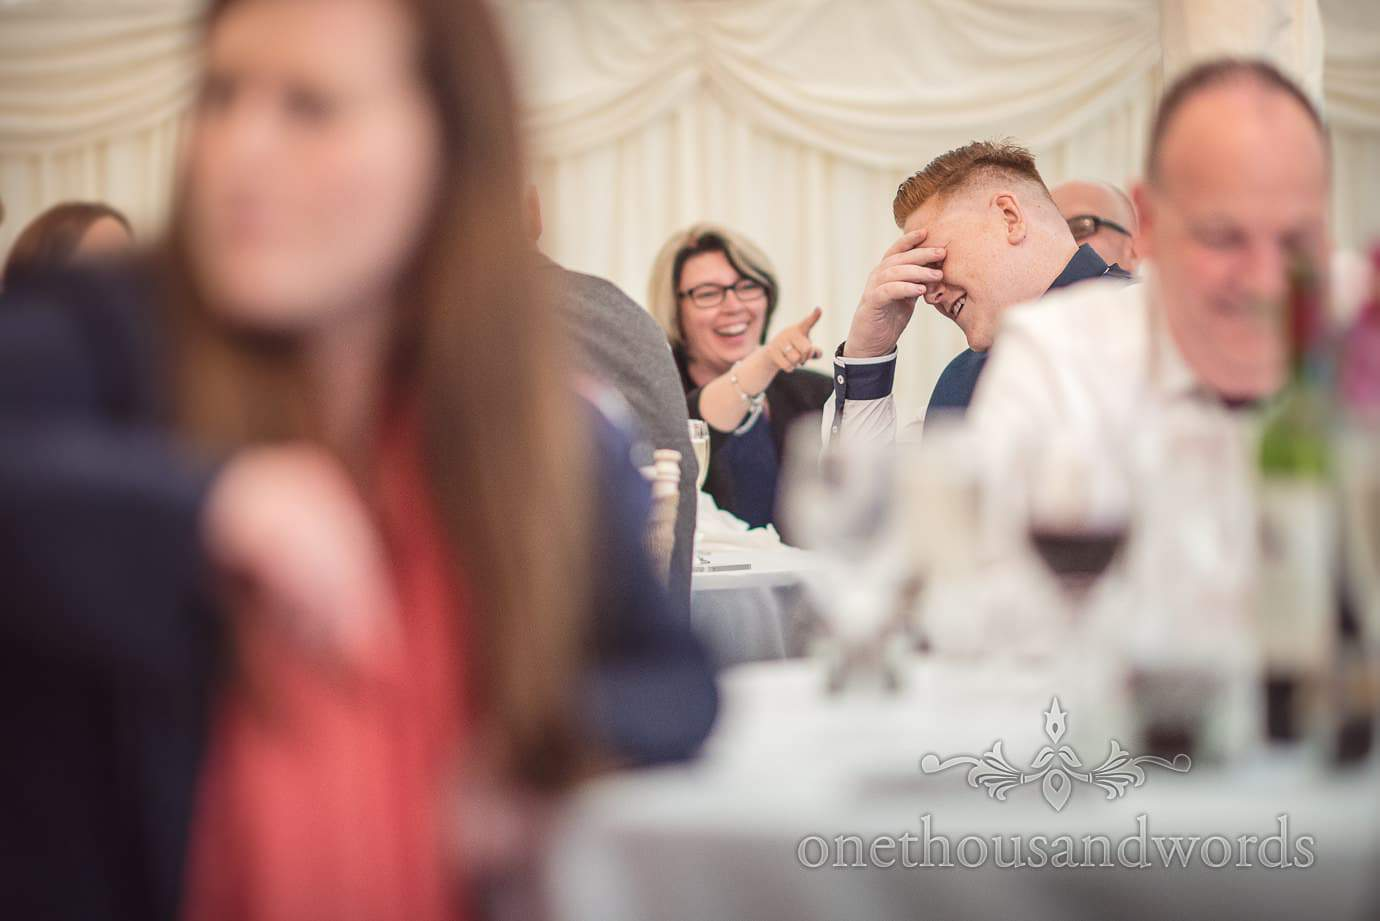 Embarrassed wedding guest holds his head in his hands at The Old Vicarage Wedding